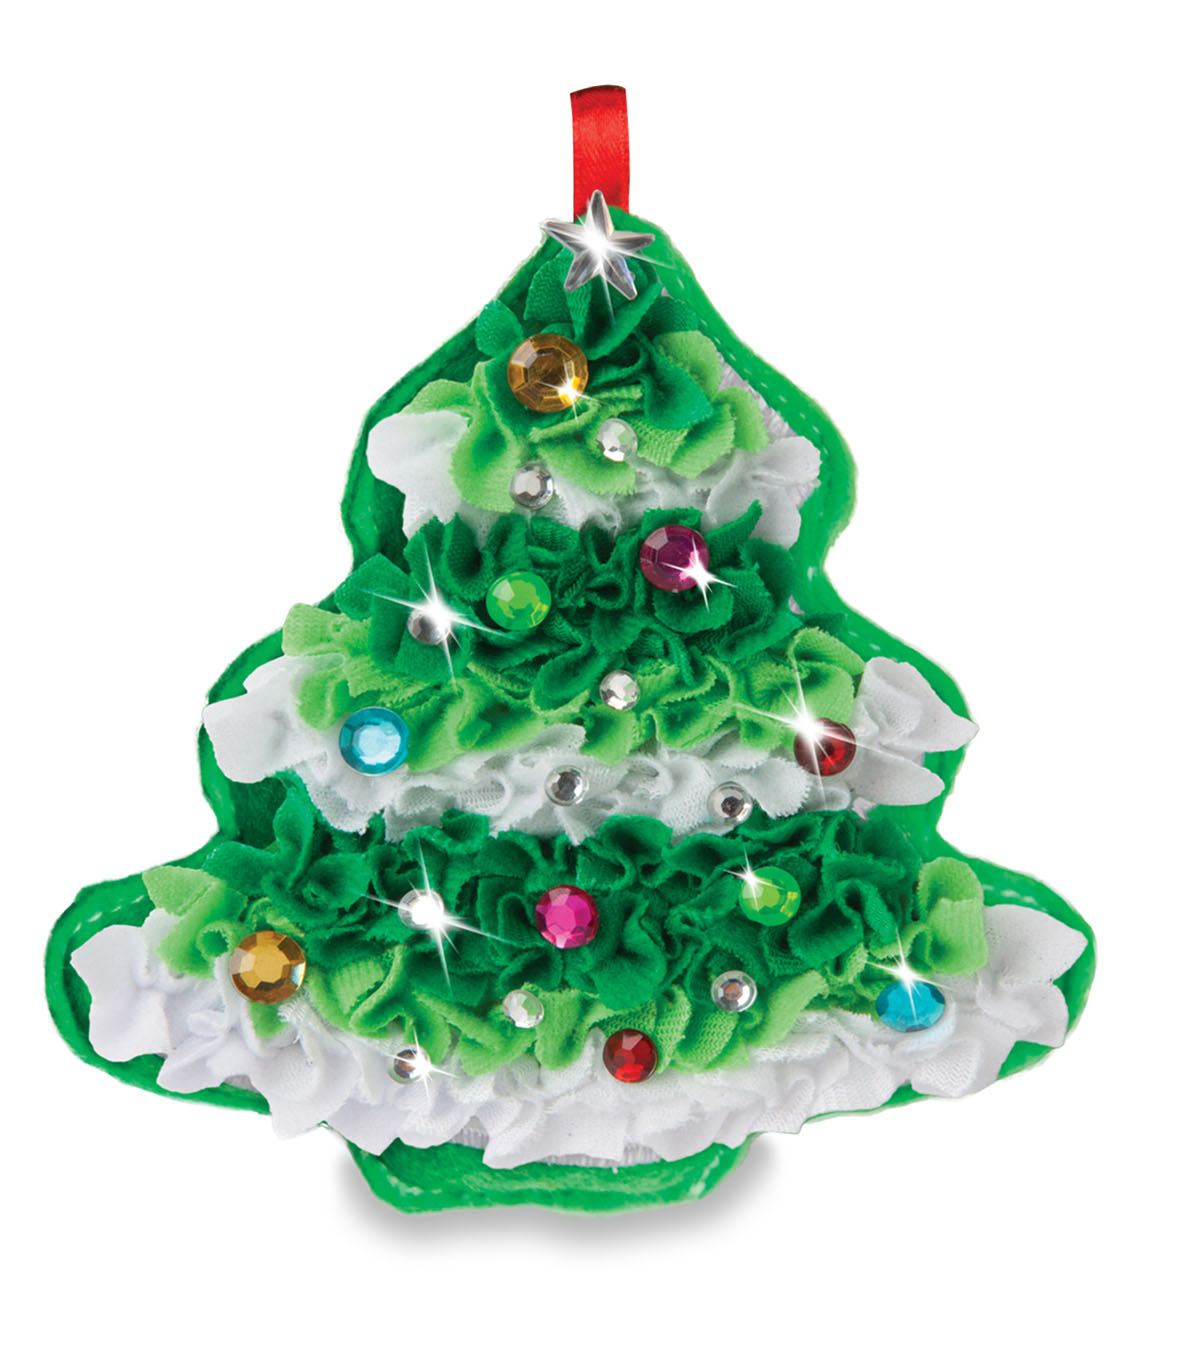 ORB Plush Craft Christmas Tree Ornament Kit | JOANN